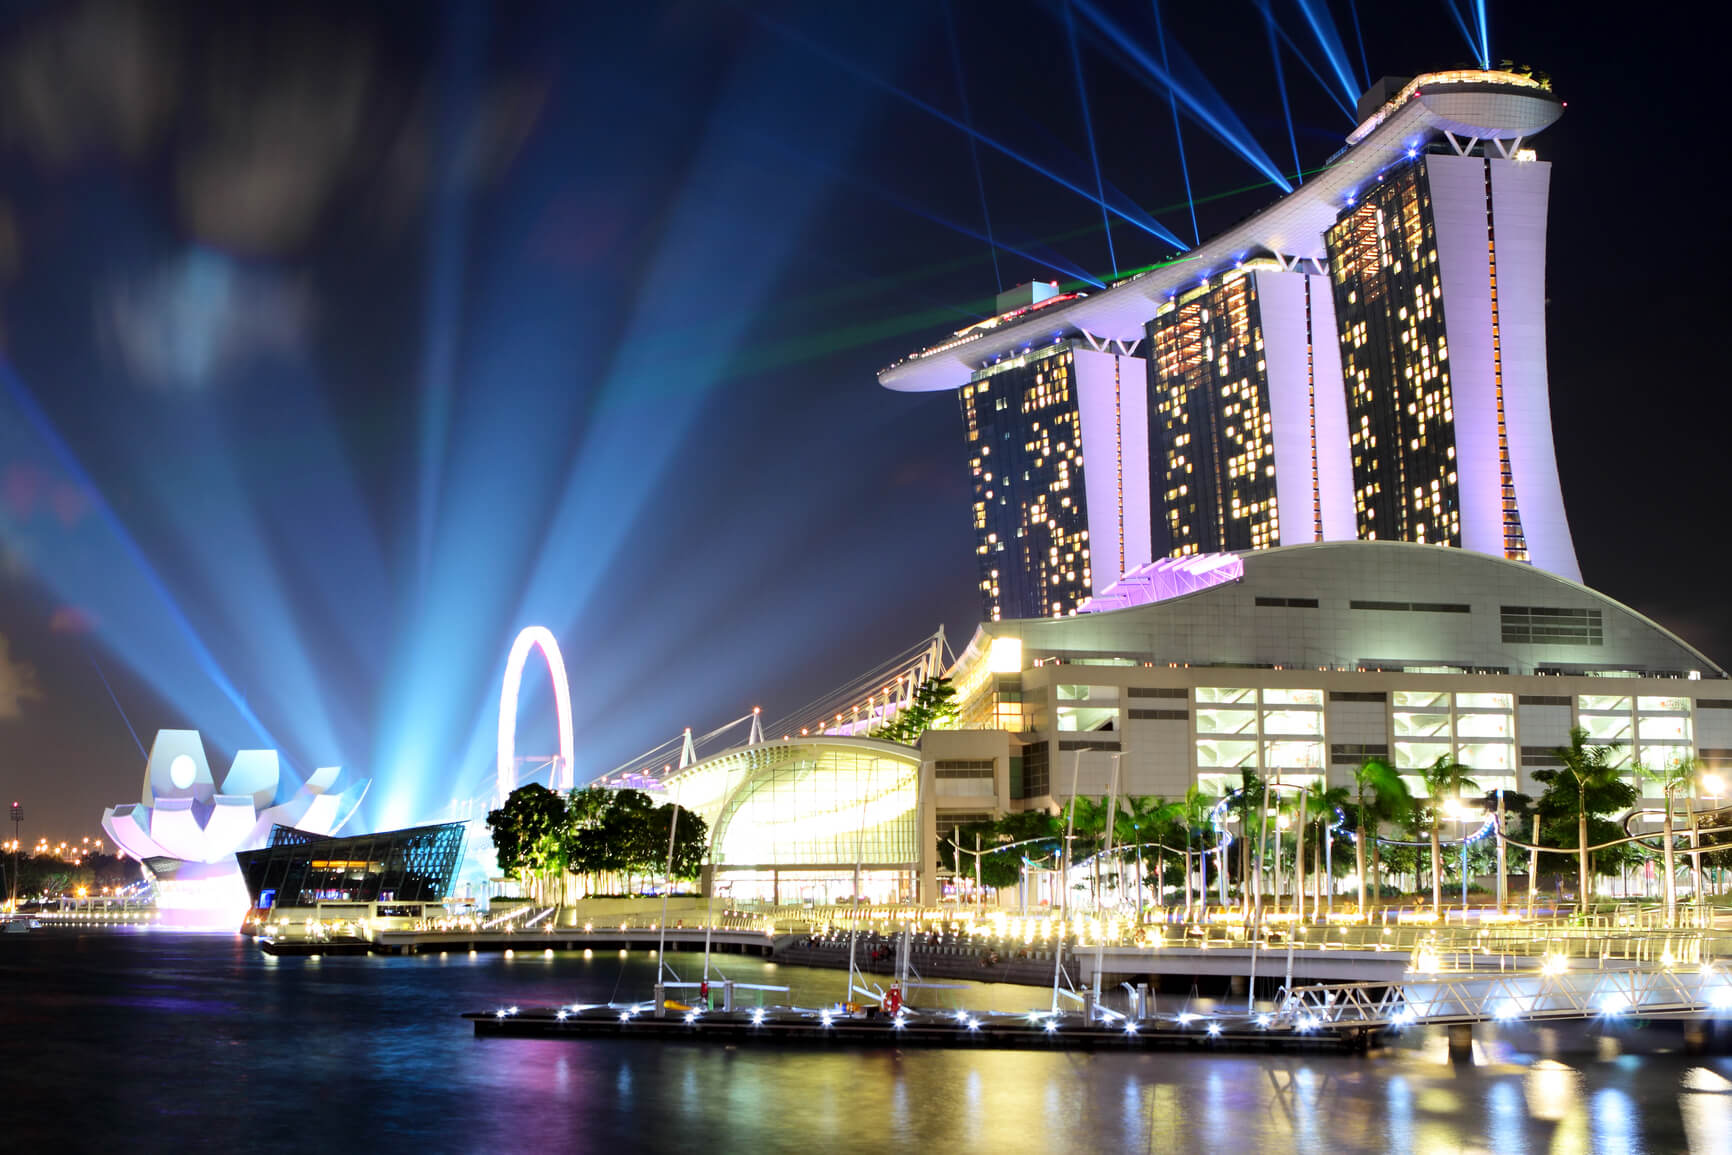 Non-stop from Tokyo, Japan to Singapore for only $349 USD roundtrip